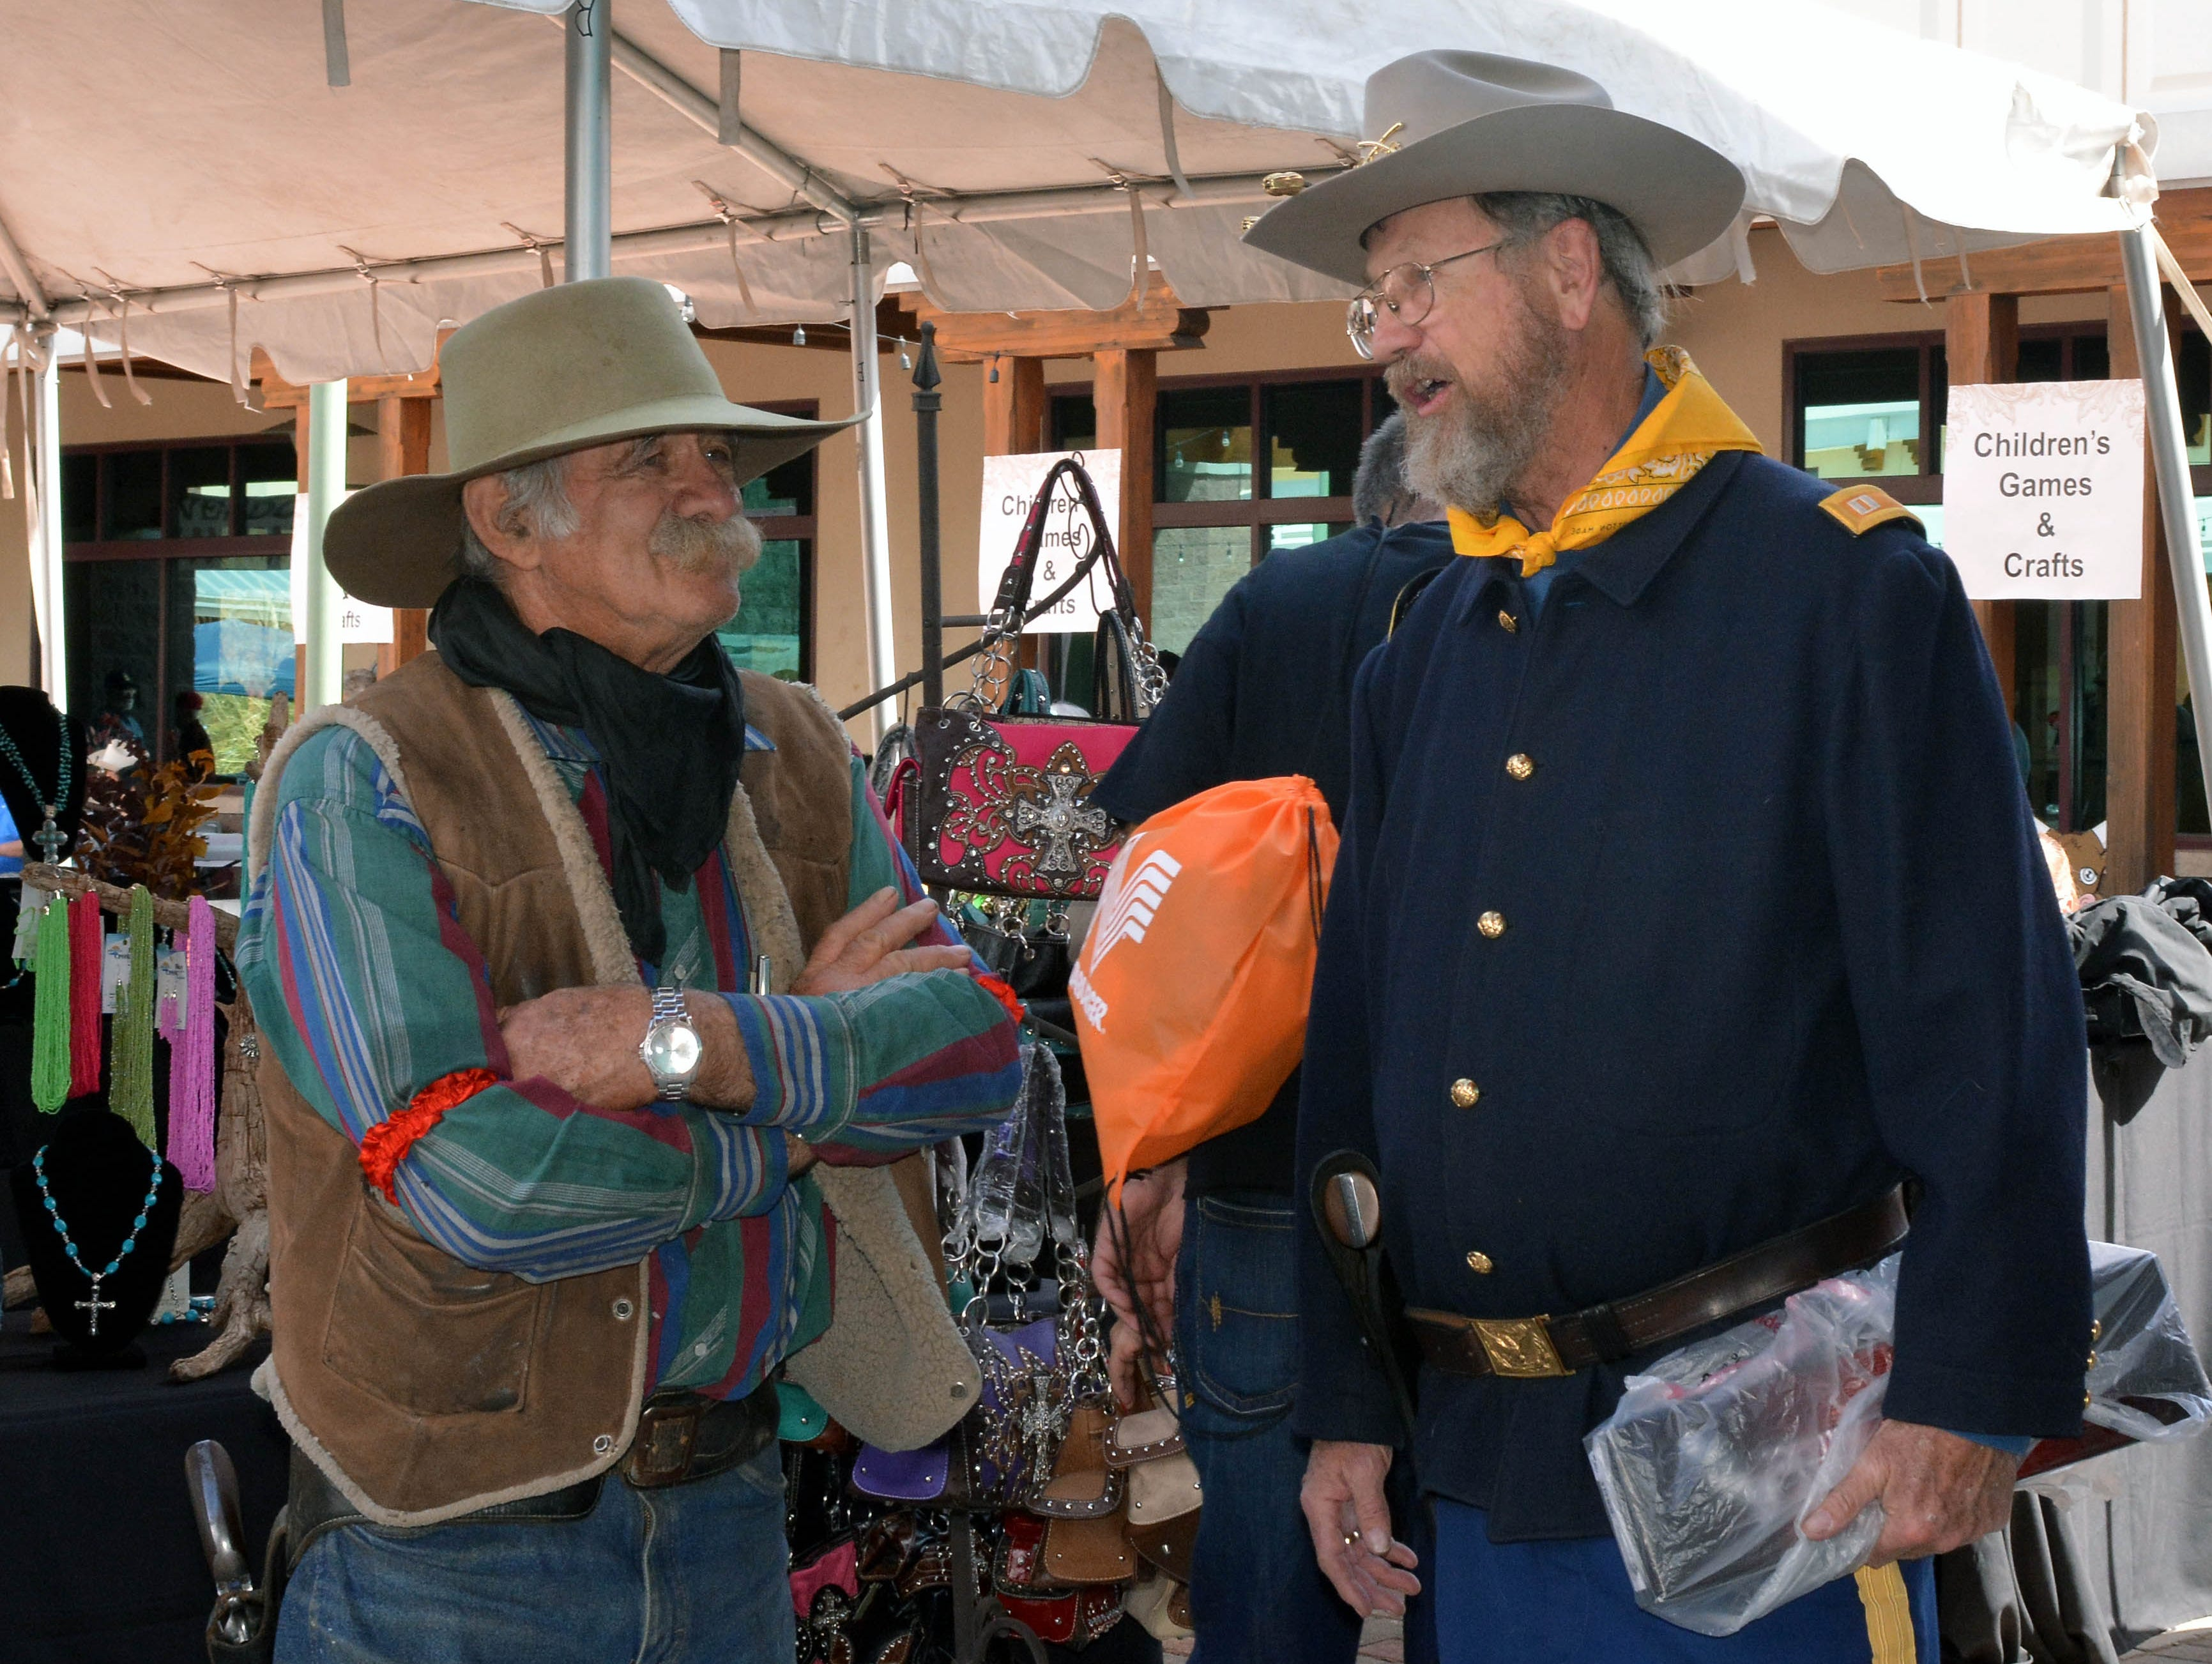 John Smith, left, of Las Cruces and Prince McKenzie, of El Paso, exchange old cowboy stories at the 20th annual Cowboy Days held Saturday, March 2, 2019, at the New Mexico Farm and Ranch Heritage Museum.